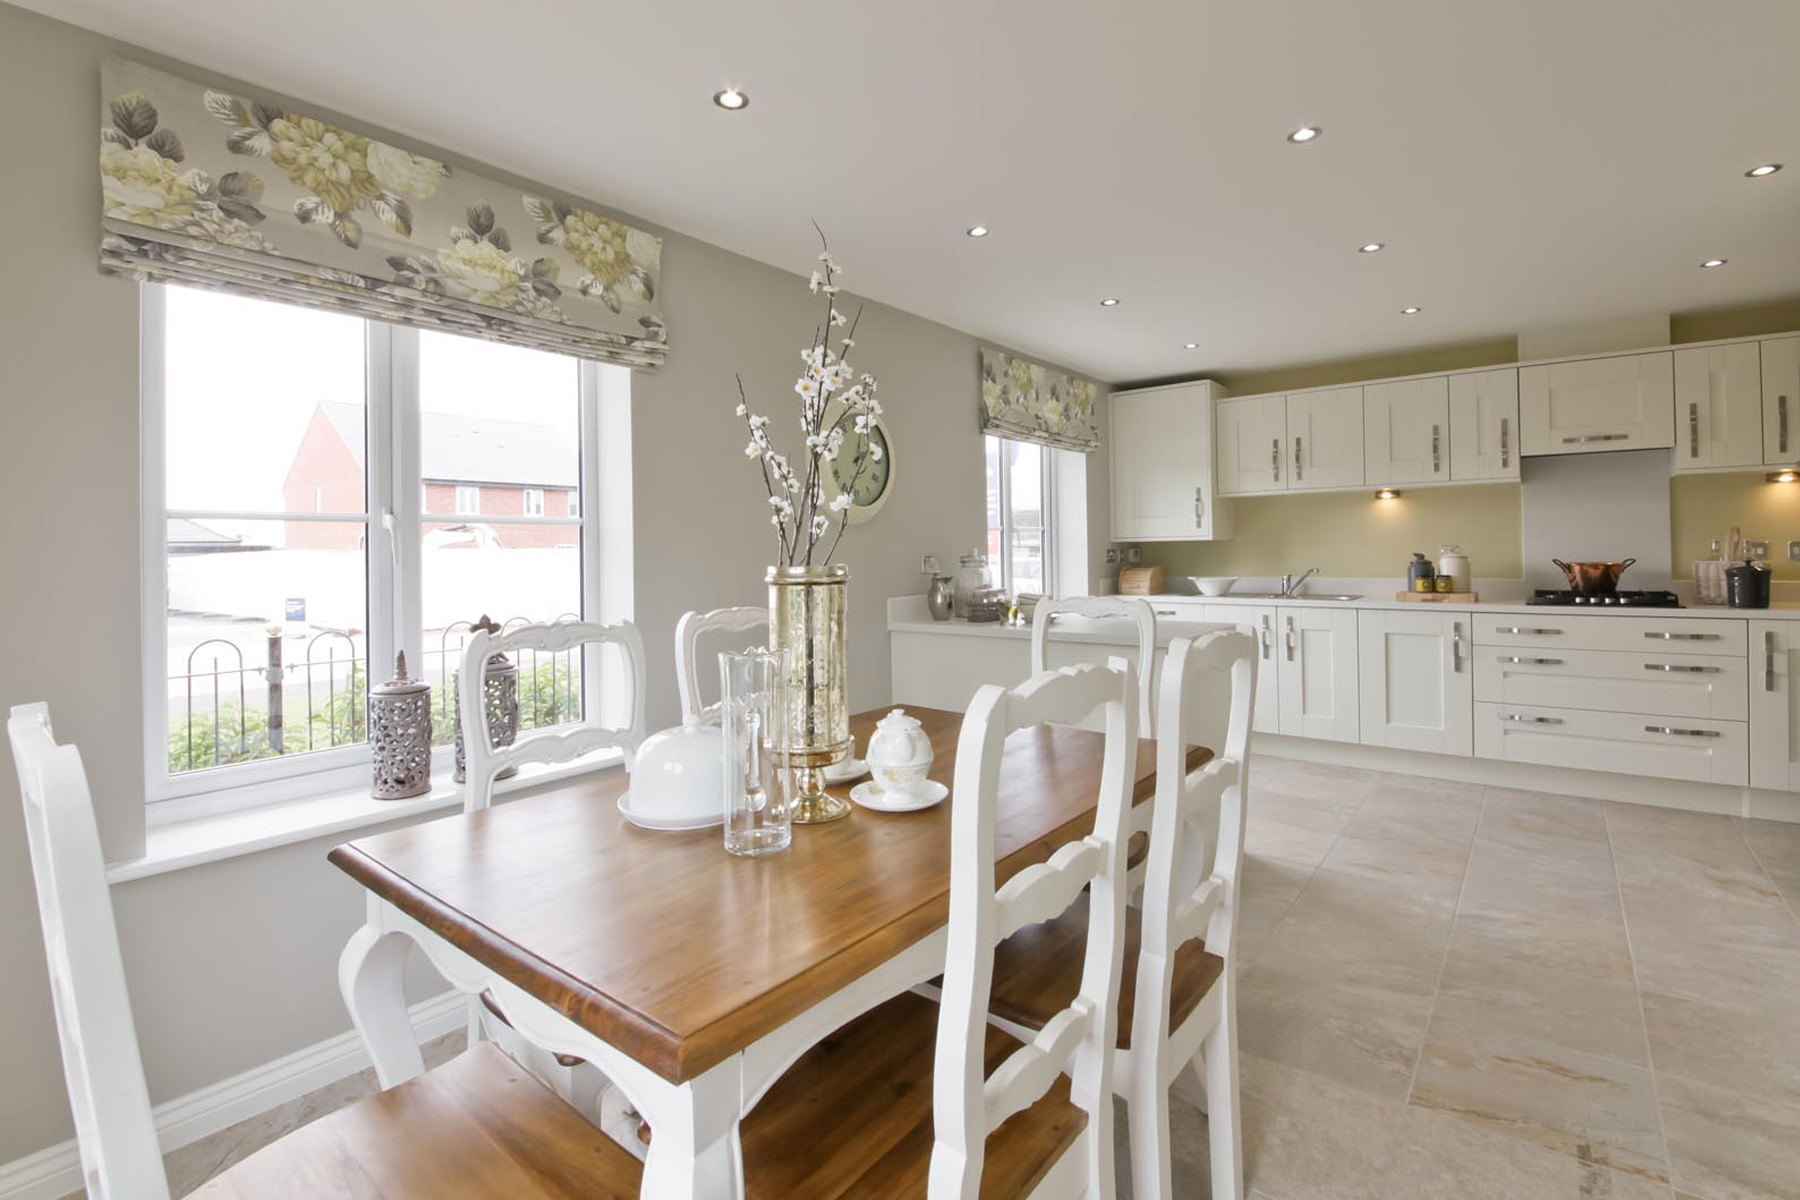 TW Exeter - Cranbrook - Tildale example kitchen